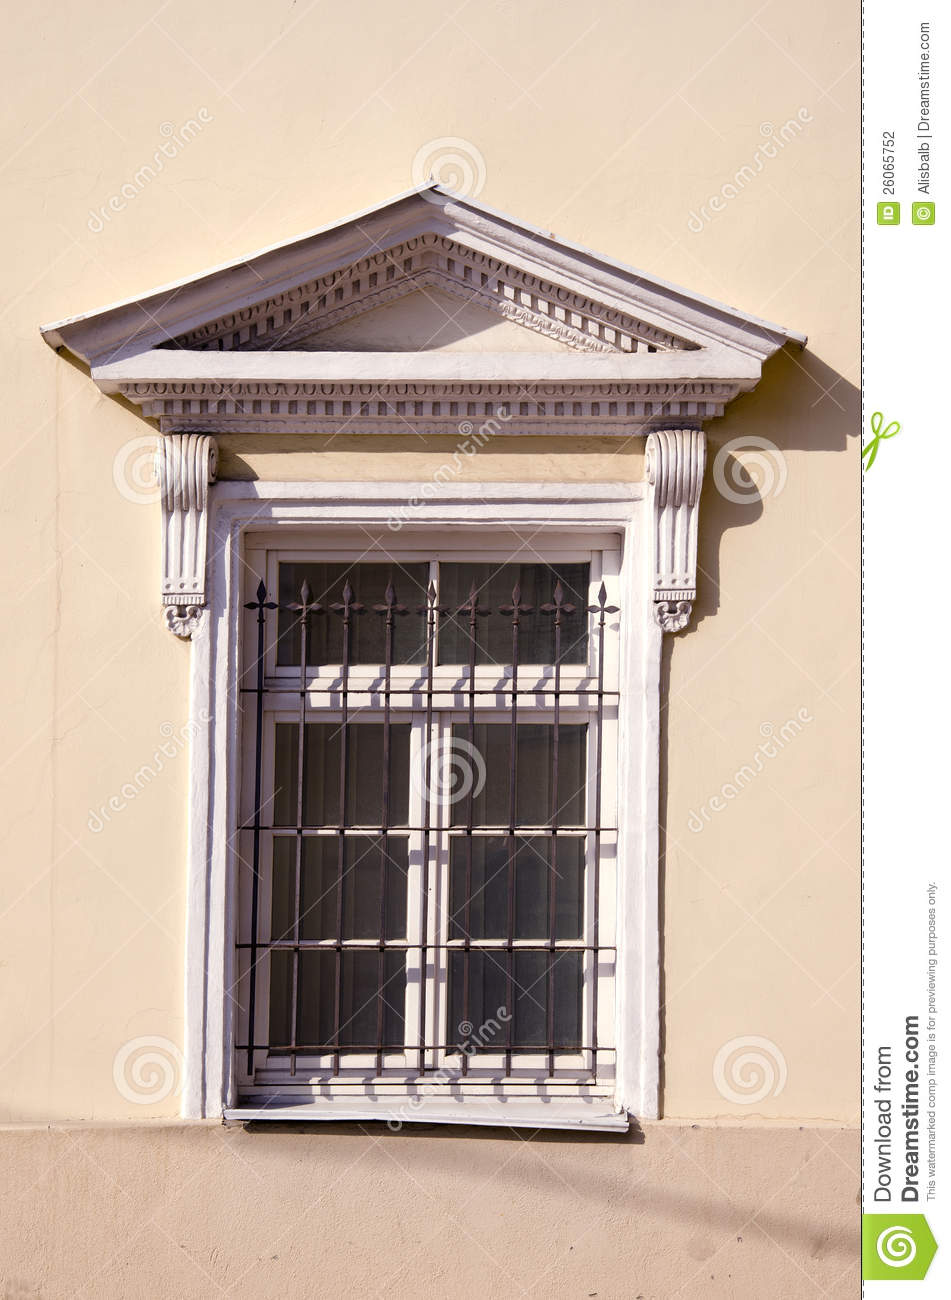 Historical Palace Window With Grating Stock Photography.